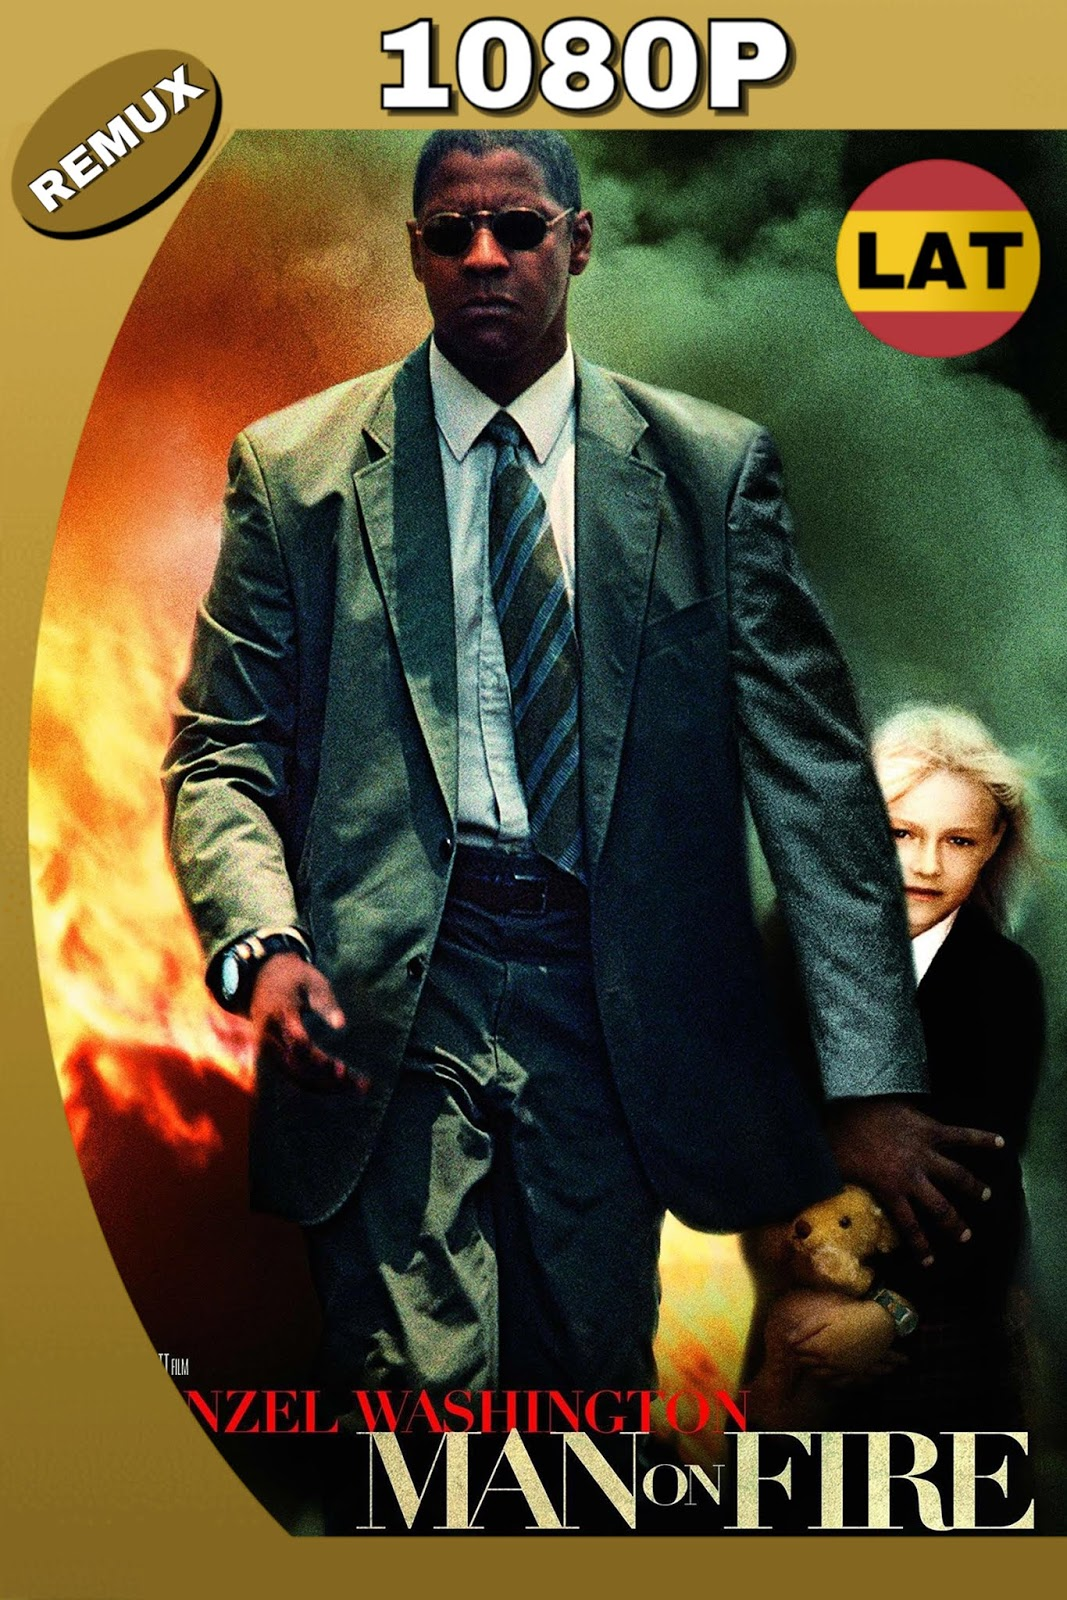 MAN ON FIRE 2004 LAT-ING HD BDREMUX 1080P 37GB.mkv